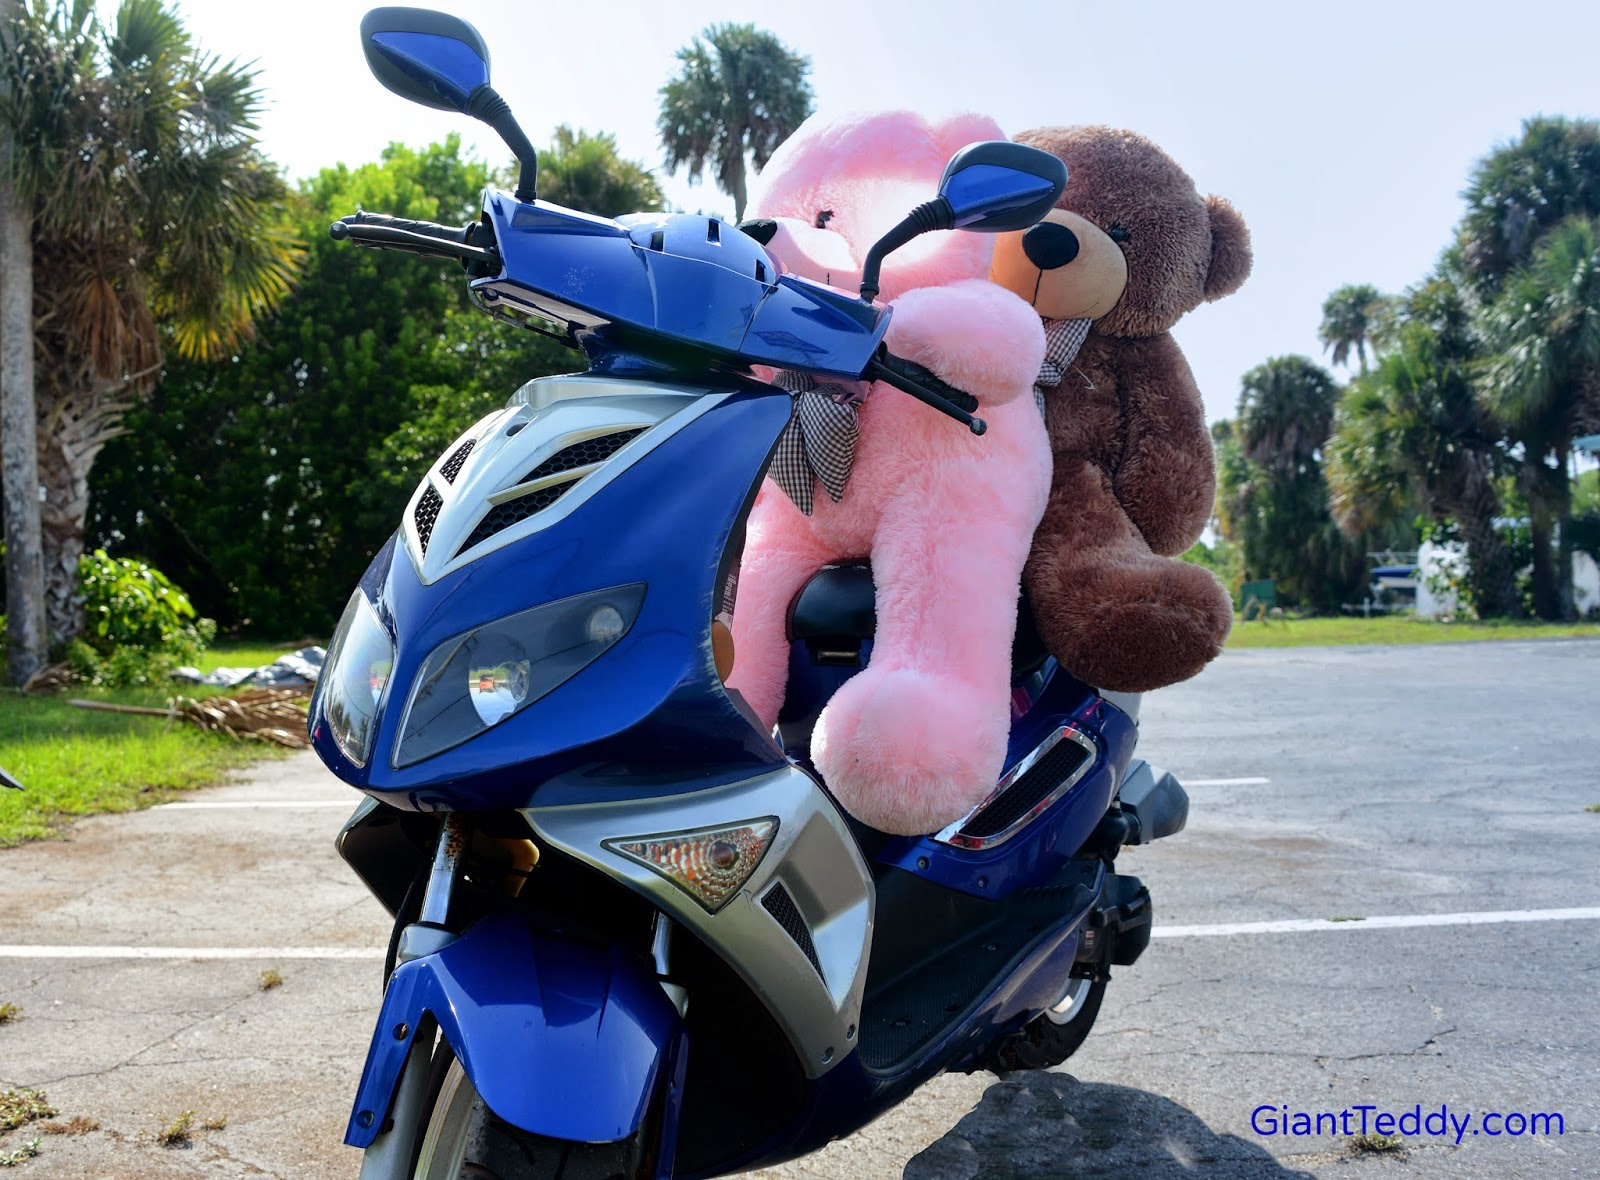 Giant Teddy bear Lady Cuddles races around Florida on a bright blue scooter